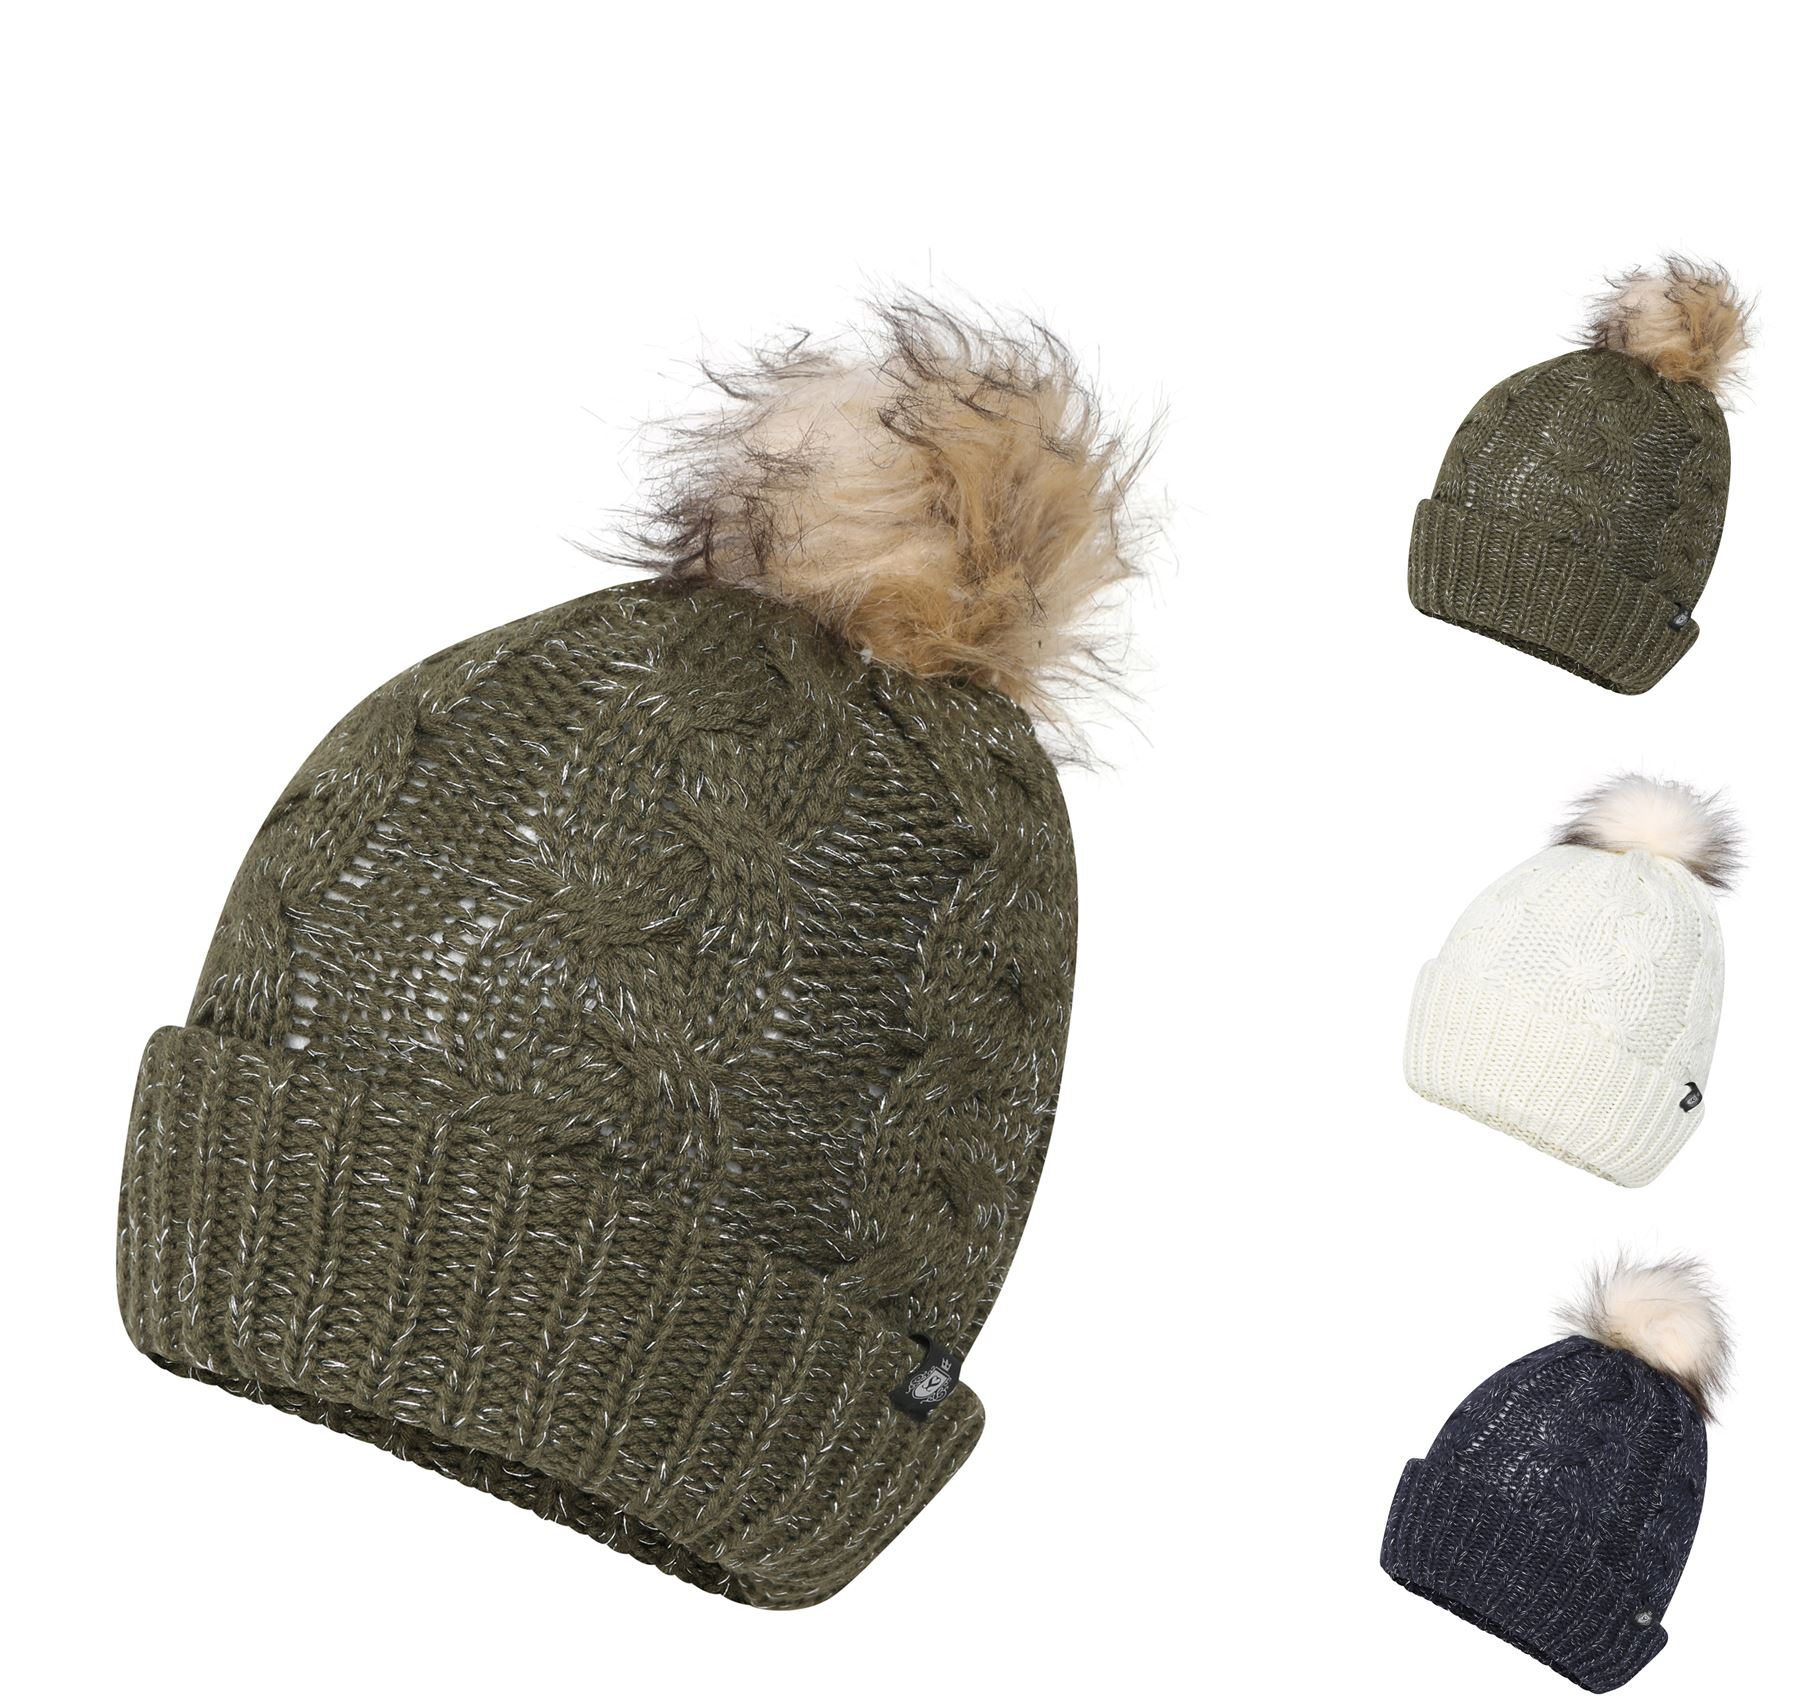 91f0a982a Details about Women's Waterproof Thinsulate Beanie Pom Pom Hat, Thermal  Hats, LA307